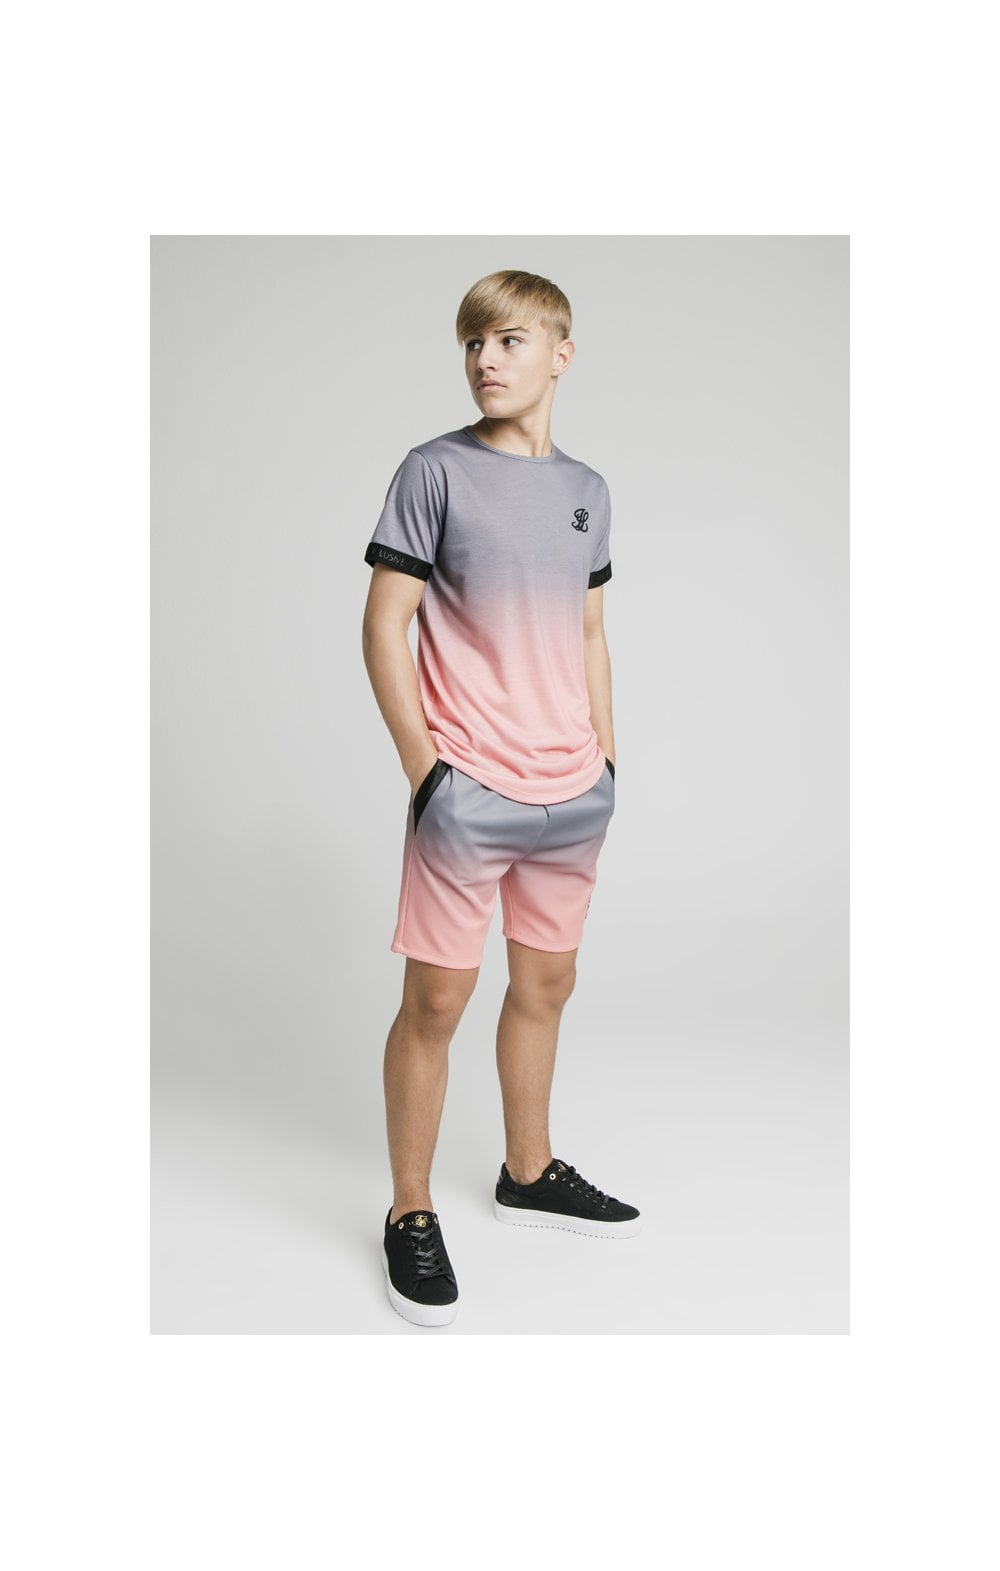 Load image into Gallery viewer, Illusive London Poly Fade Shorts - Grey & Peach (5)